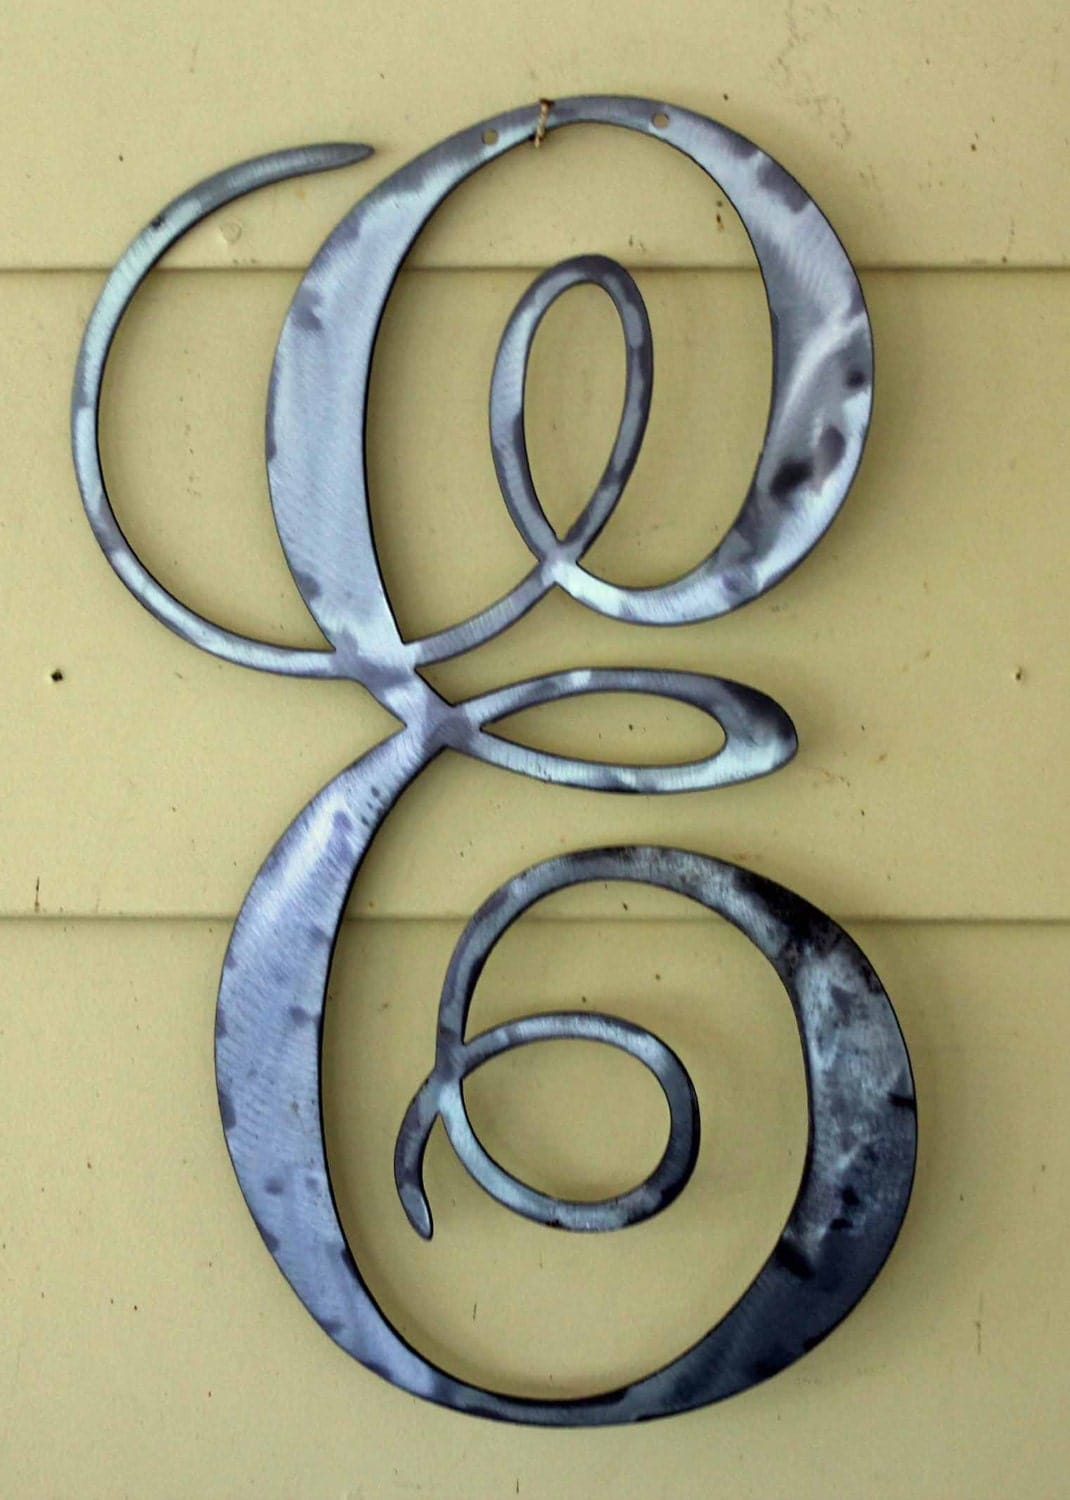 Metal Script Letters Polished Metal Script Letter E Door Or Wall Hanging